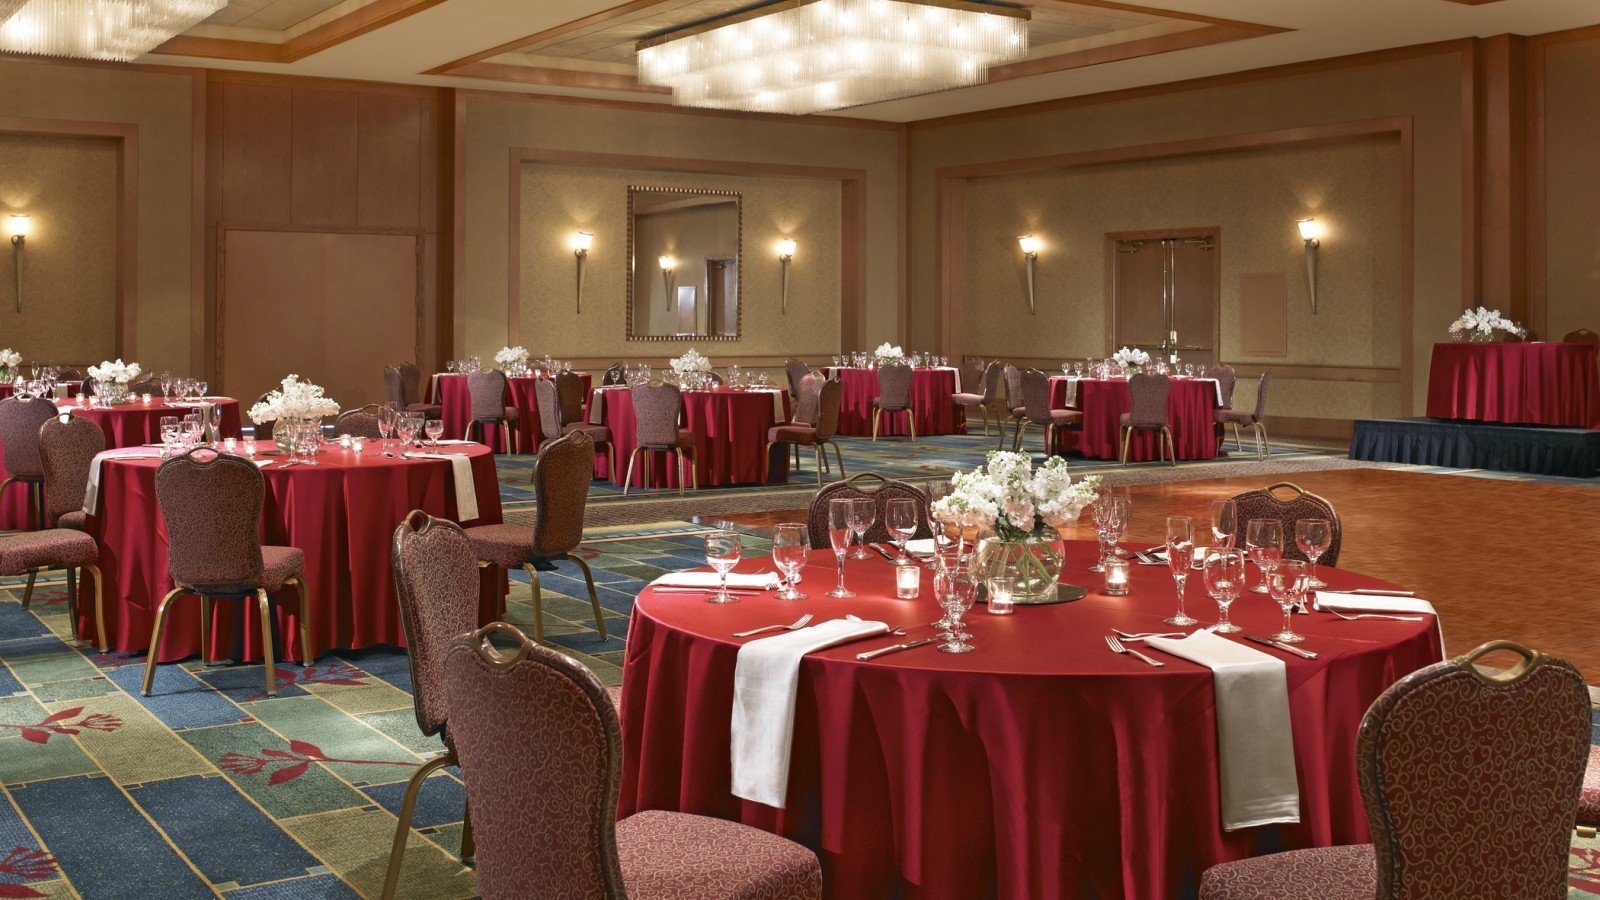 Cerritos Meeting Space - Cerrritos Ballroom